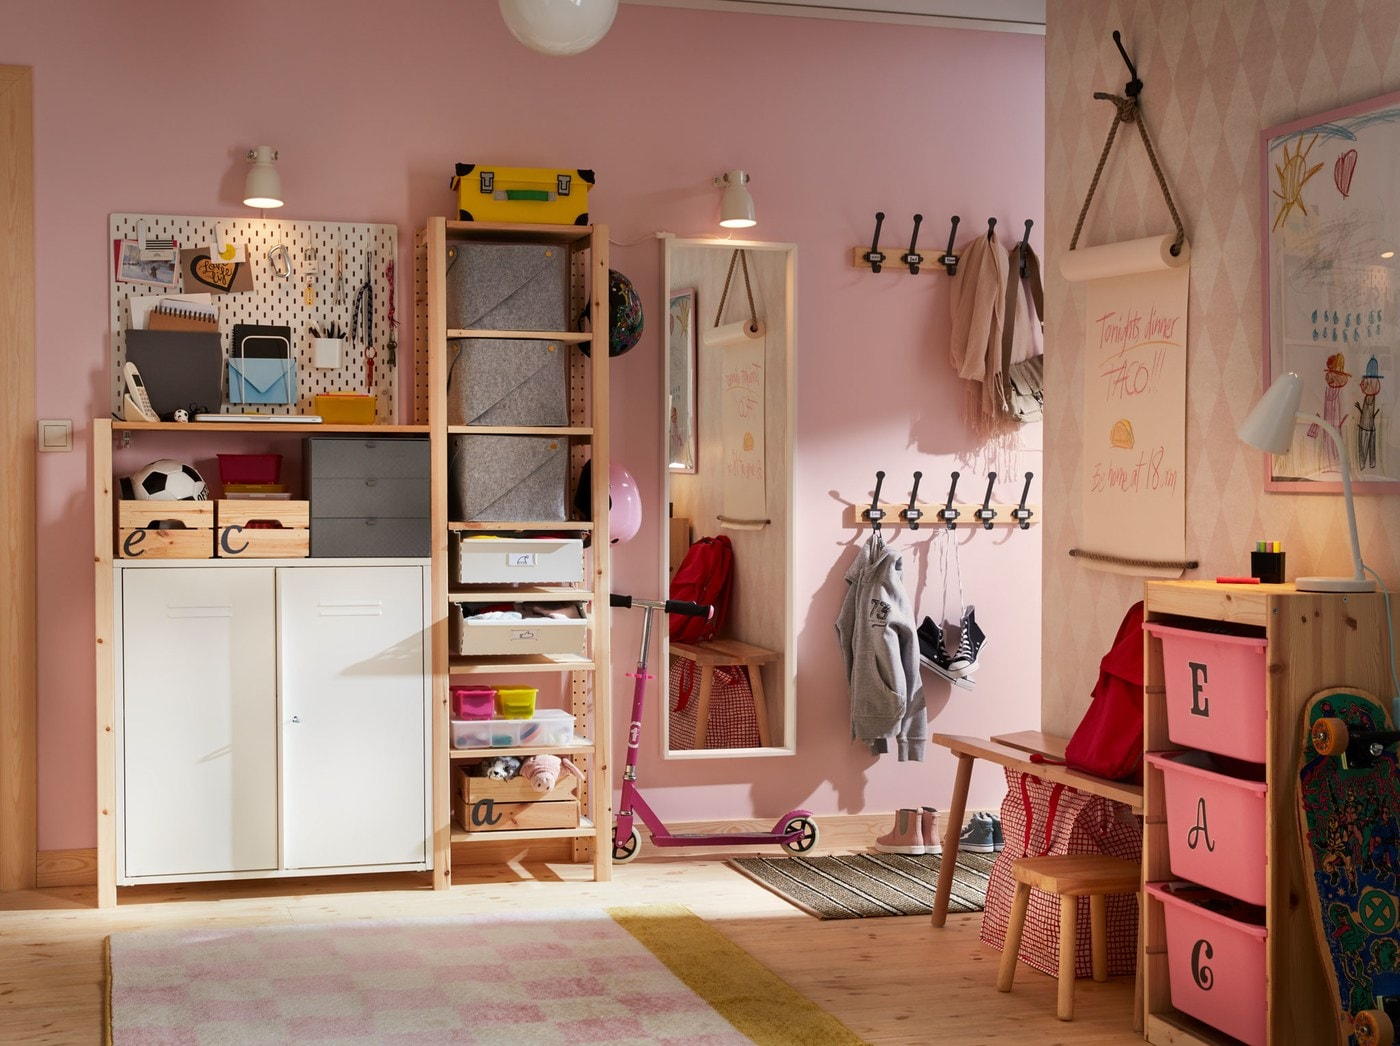 A pink hall with lots of storage like shelves, cabinets, and hooks. The whole family has what they need ready to go.